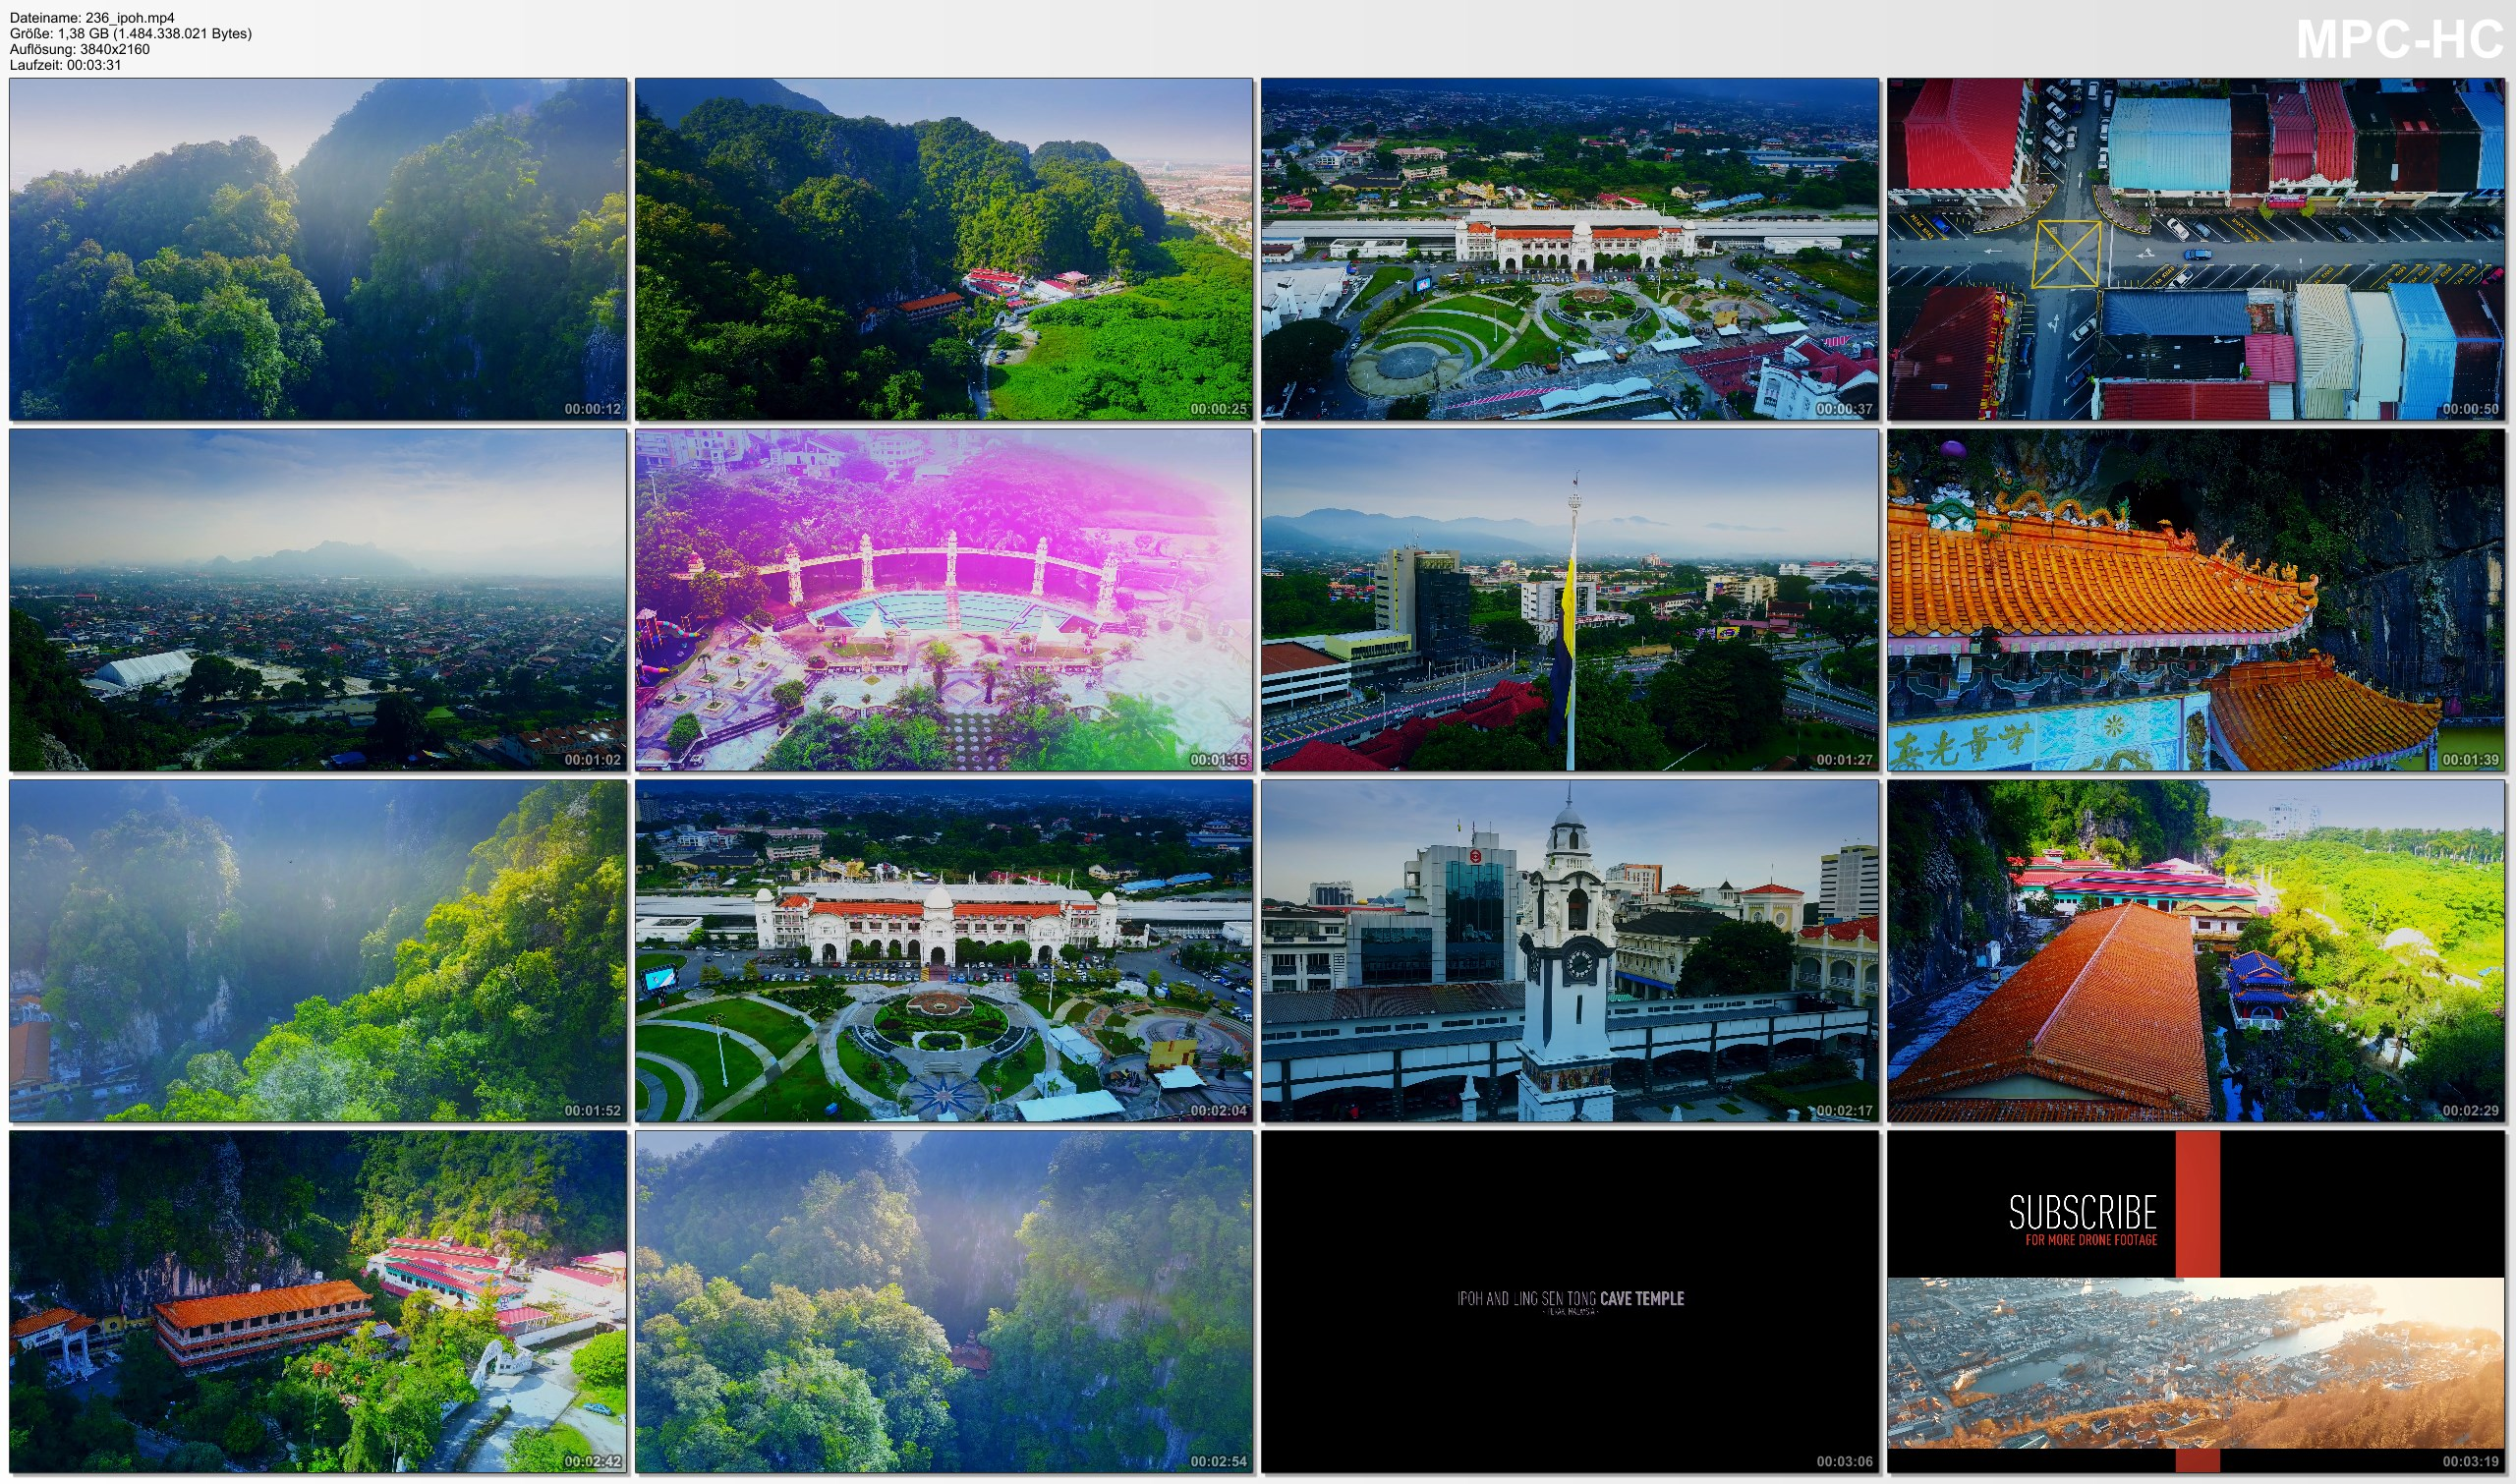 Drone Pictures from Video 【4K】Drone Footage | Ipoh and Ling Sen Tong Cave Temple 2019 ..: Perak | Truly Asia *TRAVEL MALAYSIA*